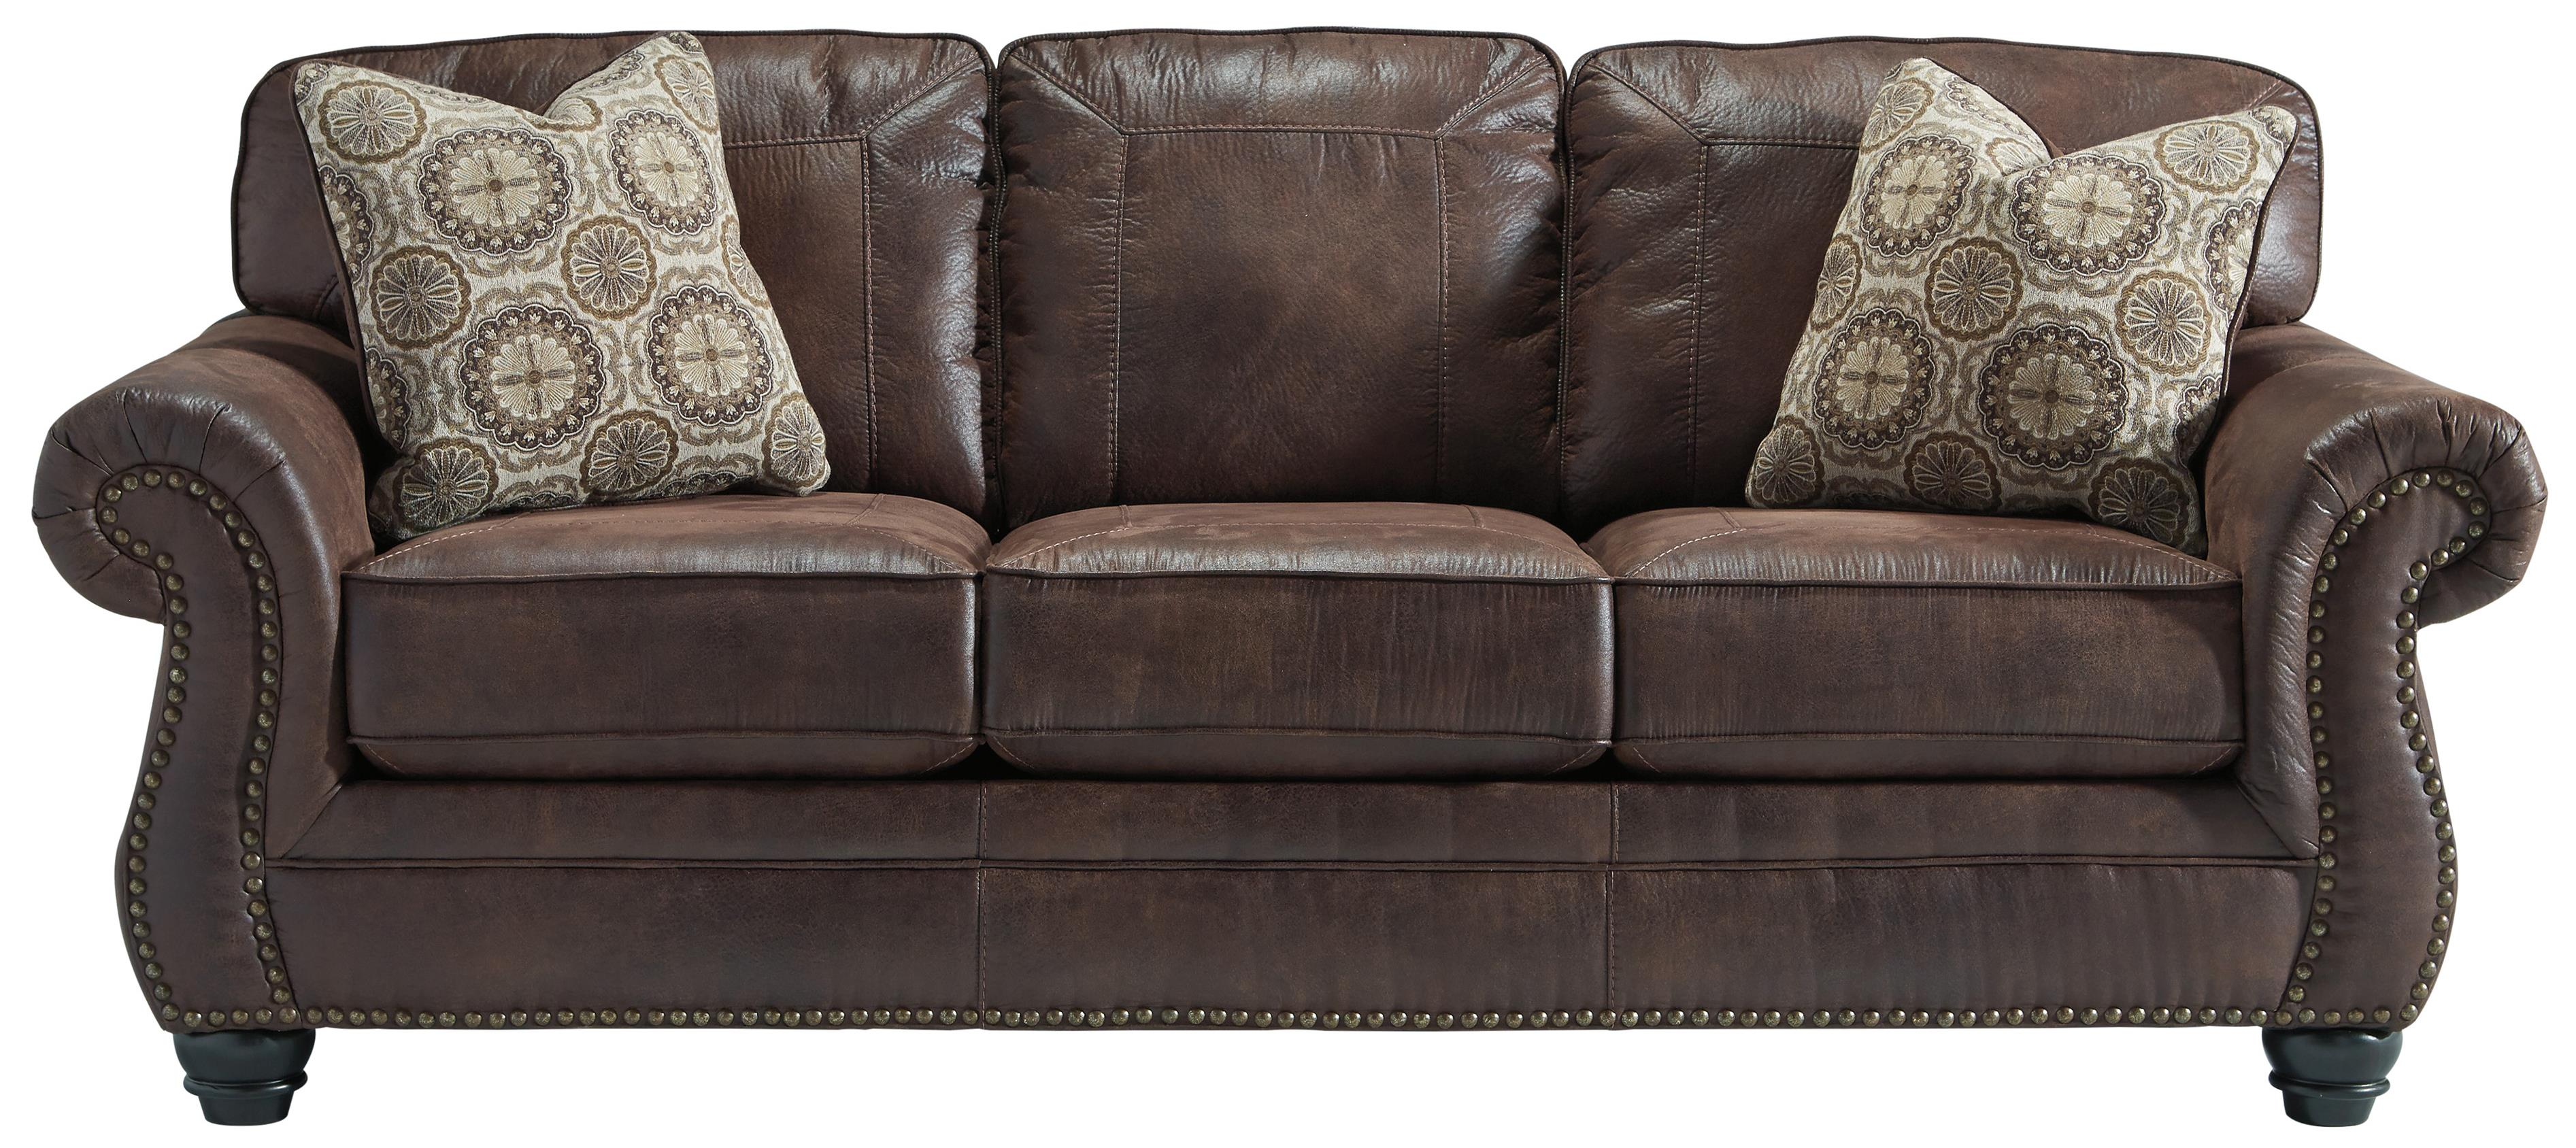 Faux Leather Sofa with Rolled Arms and Nailhead Trim by Benchcraft  Wolf and Gardiner Wolf